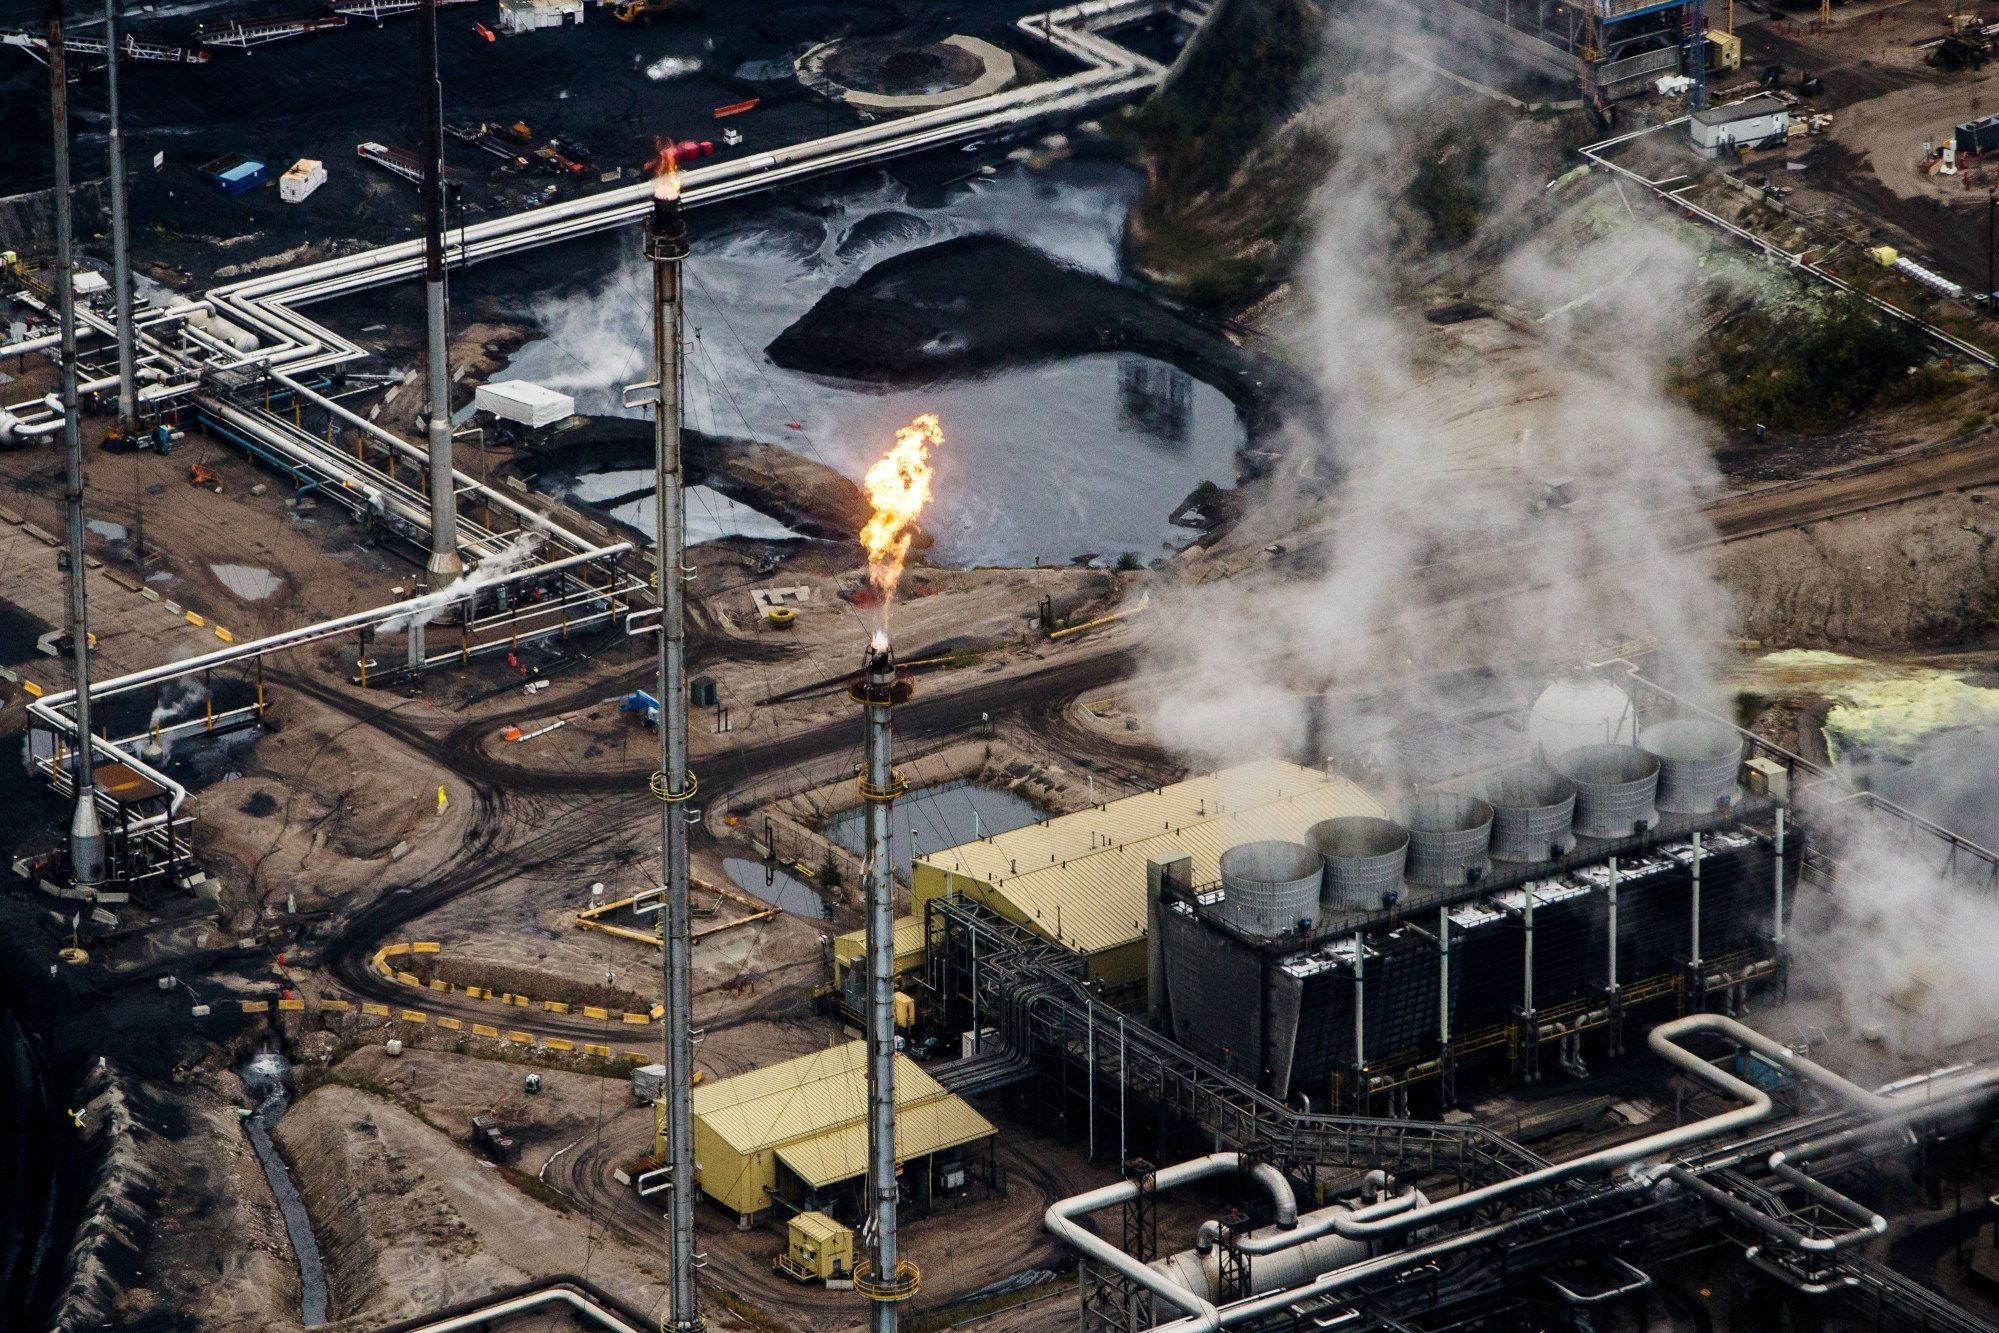 Alberta's Oil Sands: Why They Are the Most Destructive In the World